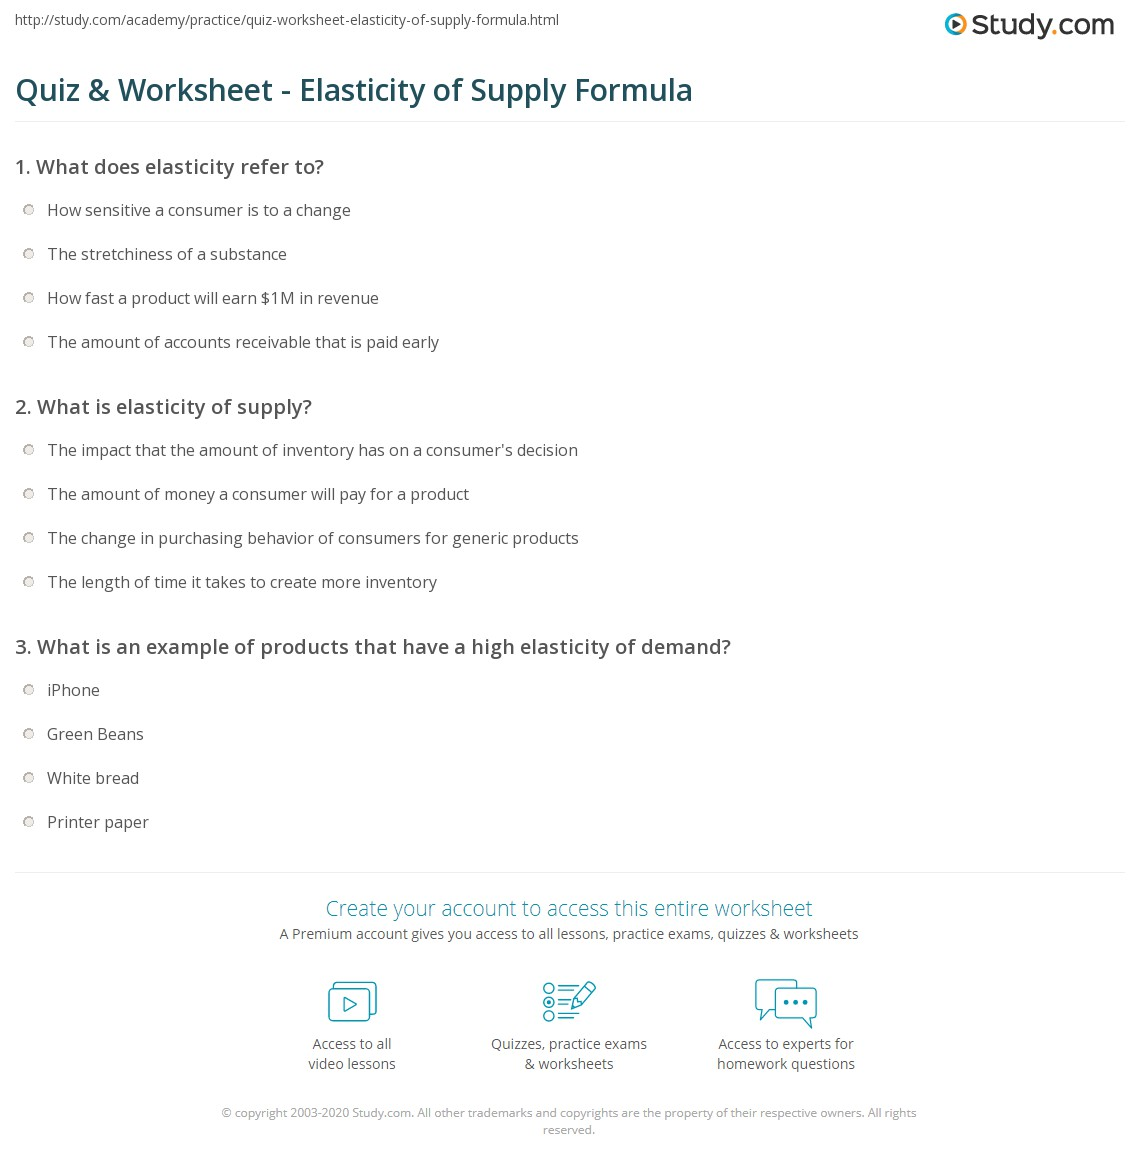 quiz worksheet elasticity of supply formula. Black Bedroom Furniture Sets. Home Design Ideas